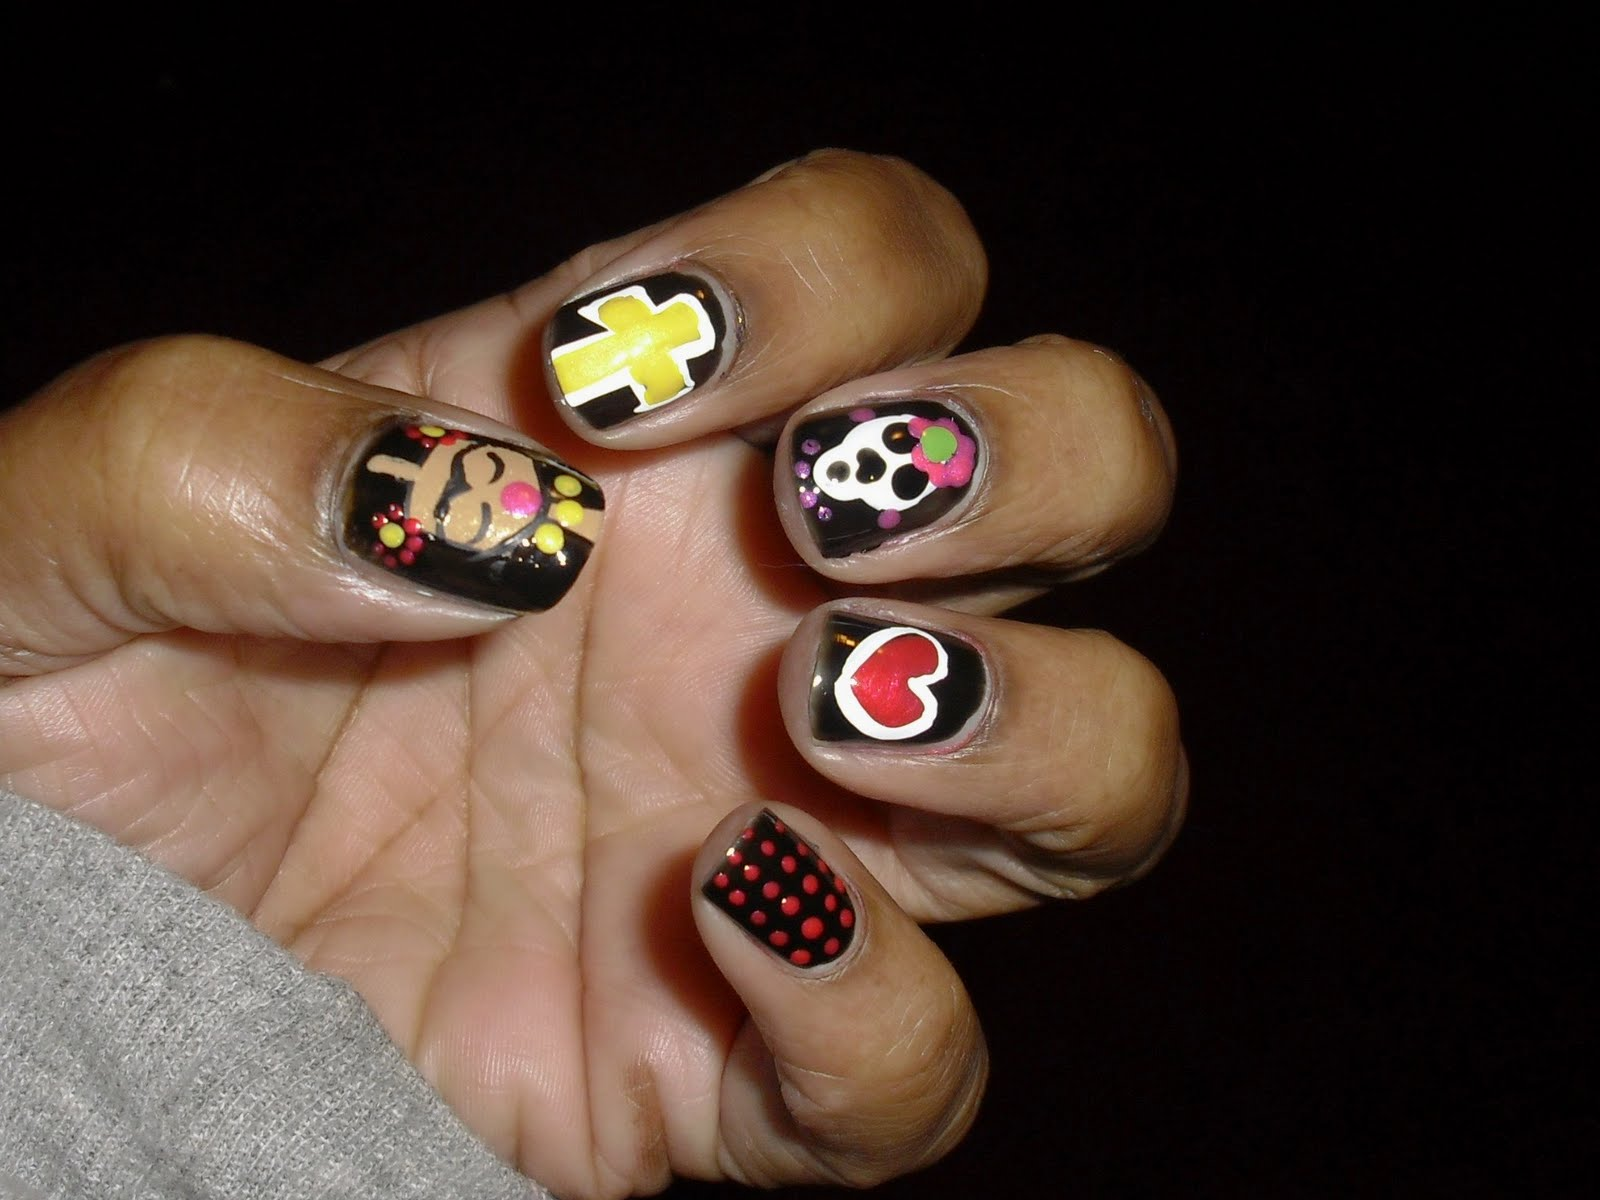 The Princess of Polish: The Princess of Polish..Day of the Dead Nails